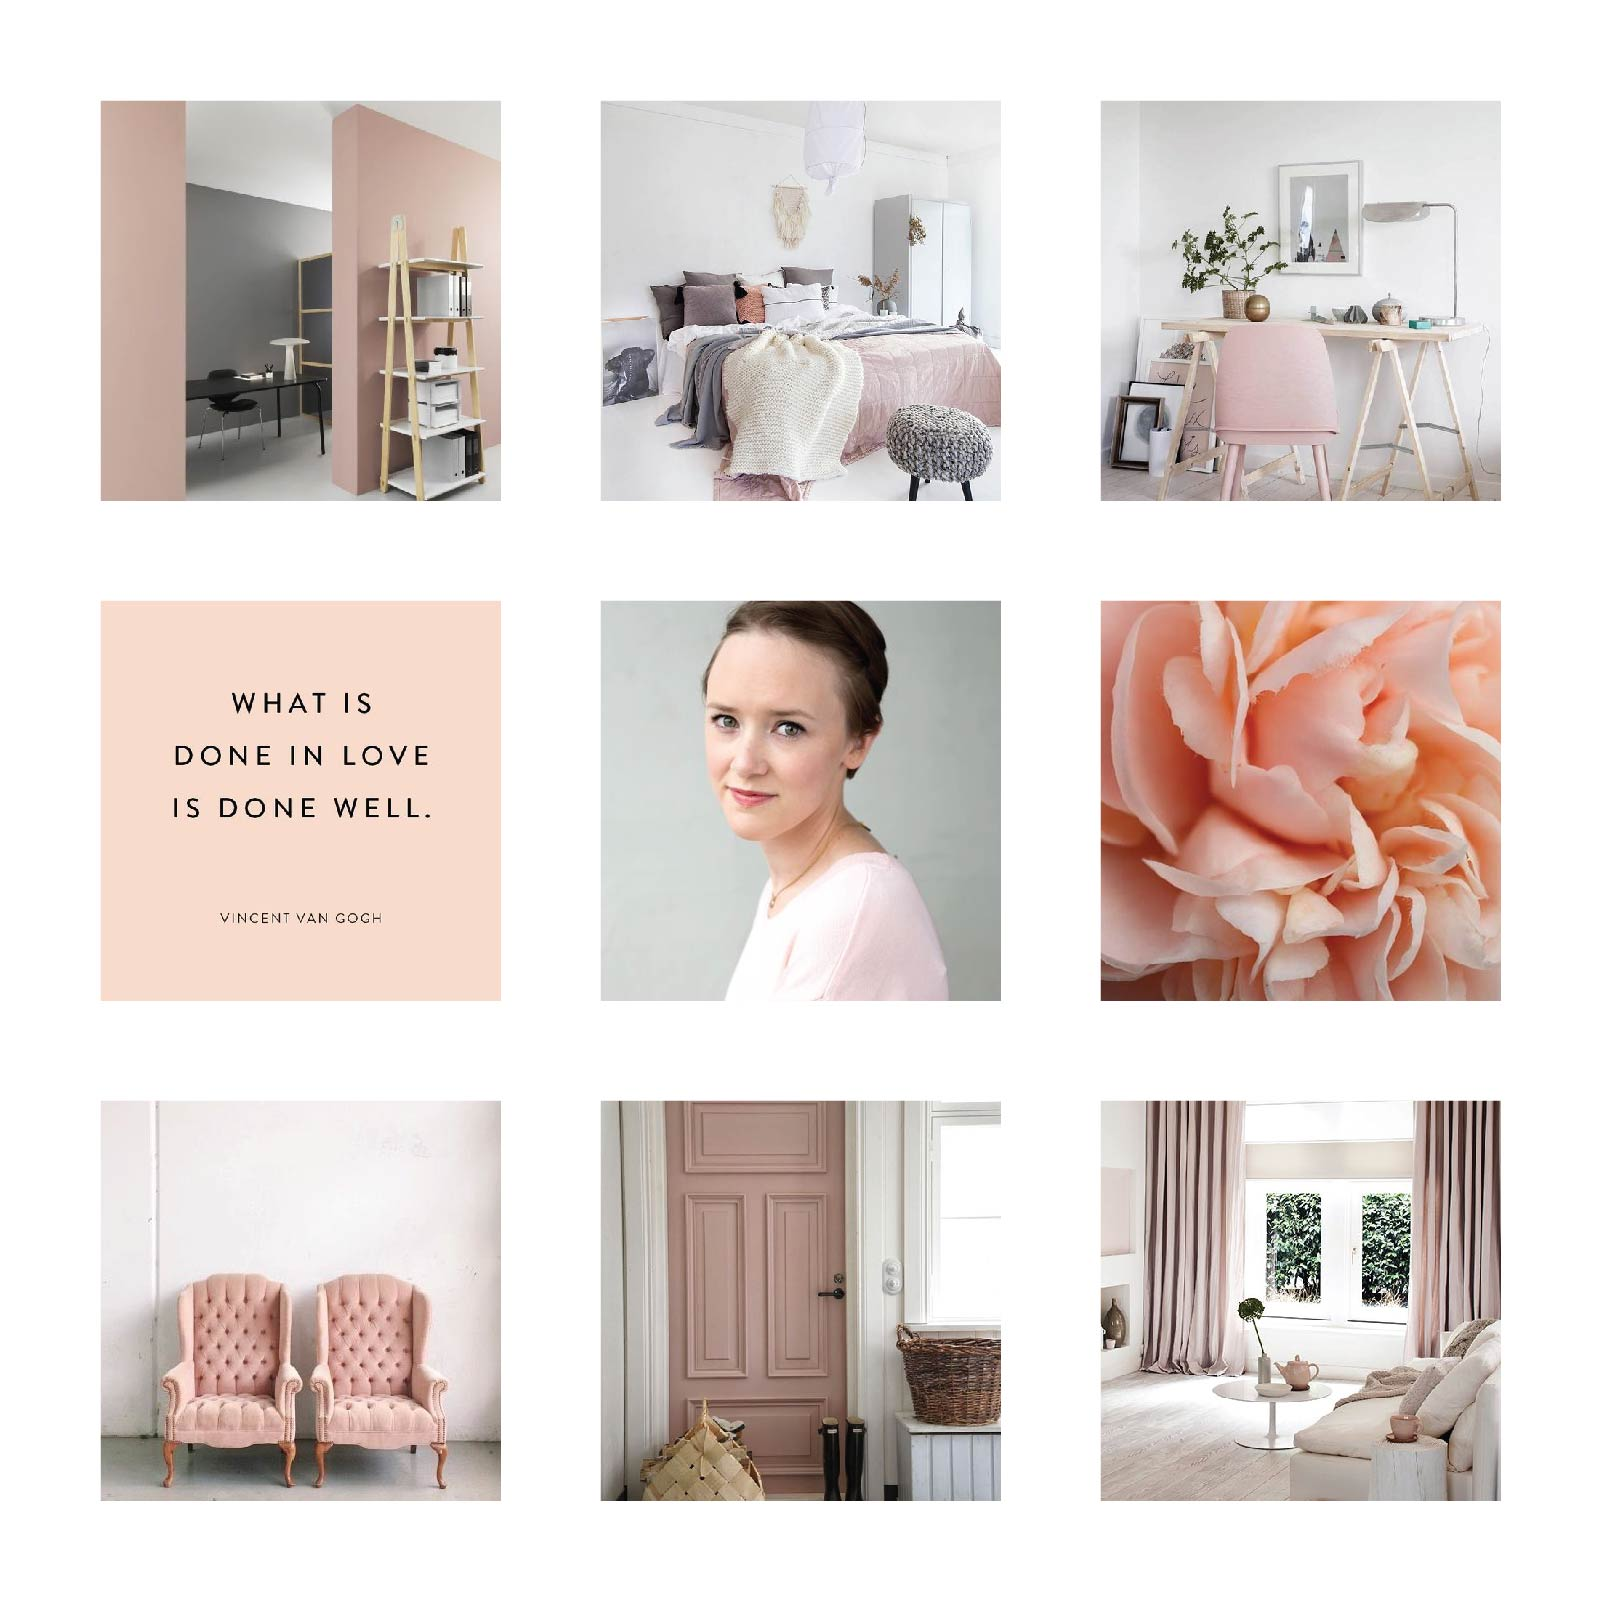 Website Upgrade Mood board for Jessica Erin Martin's official website